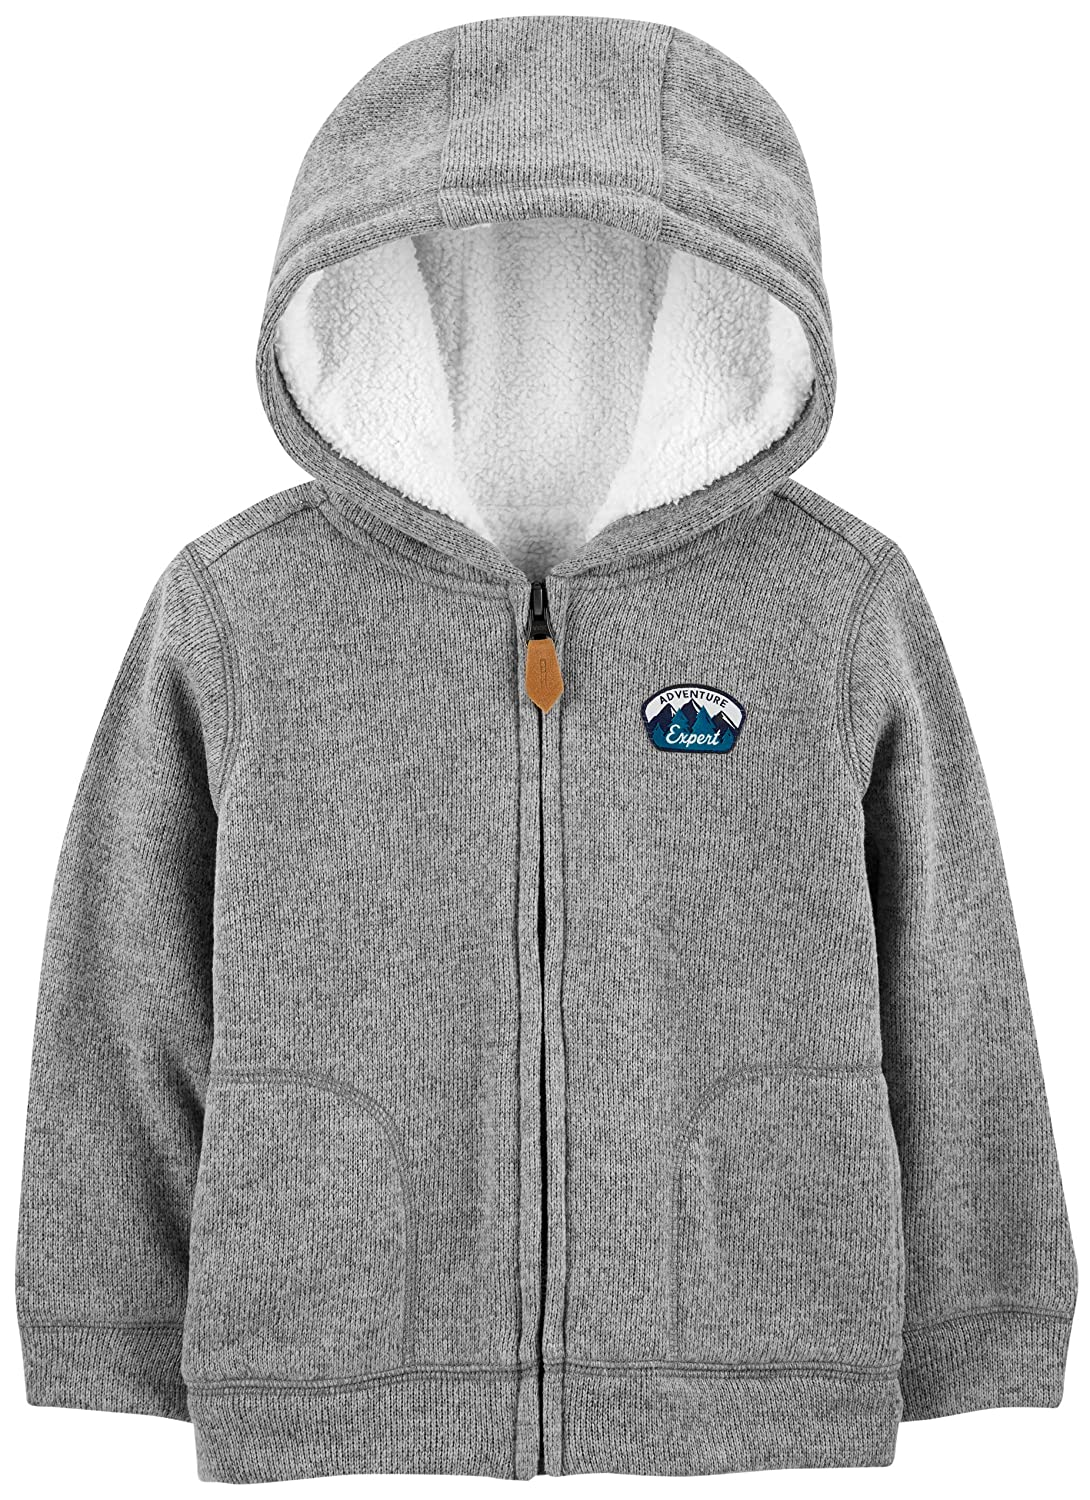 Simple Joys by Carter's Toddler Boys' Hooded Fleece Jacket with Sherpa Lining